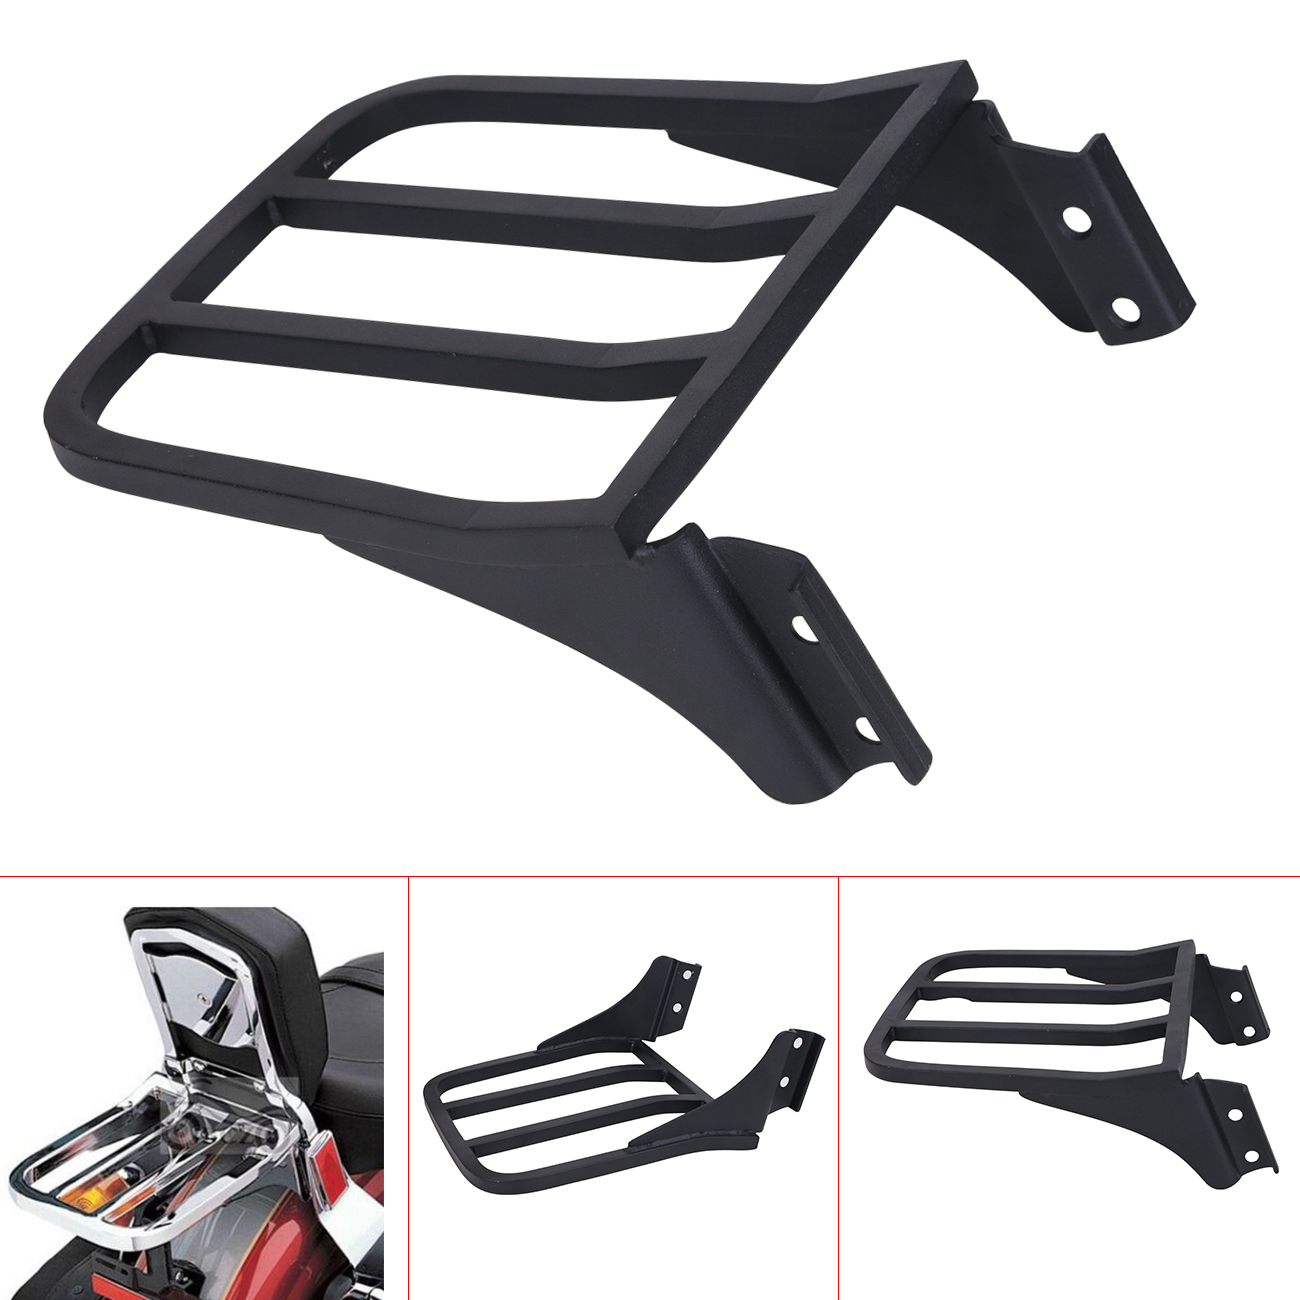 Black Motorcycle Backrest Sport Sissy Bar Luggage Rack For Harley HD Sportster XL 04-17/ Dyna 06-17/ Softail 84-05 FLST #MBJ328 two up luggage rack w led light case for harley sportster xl dyna softial 1984 2017